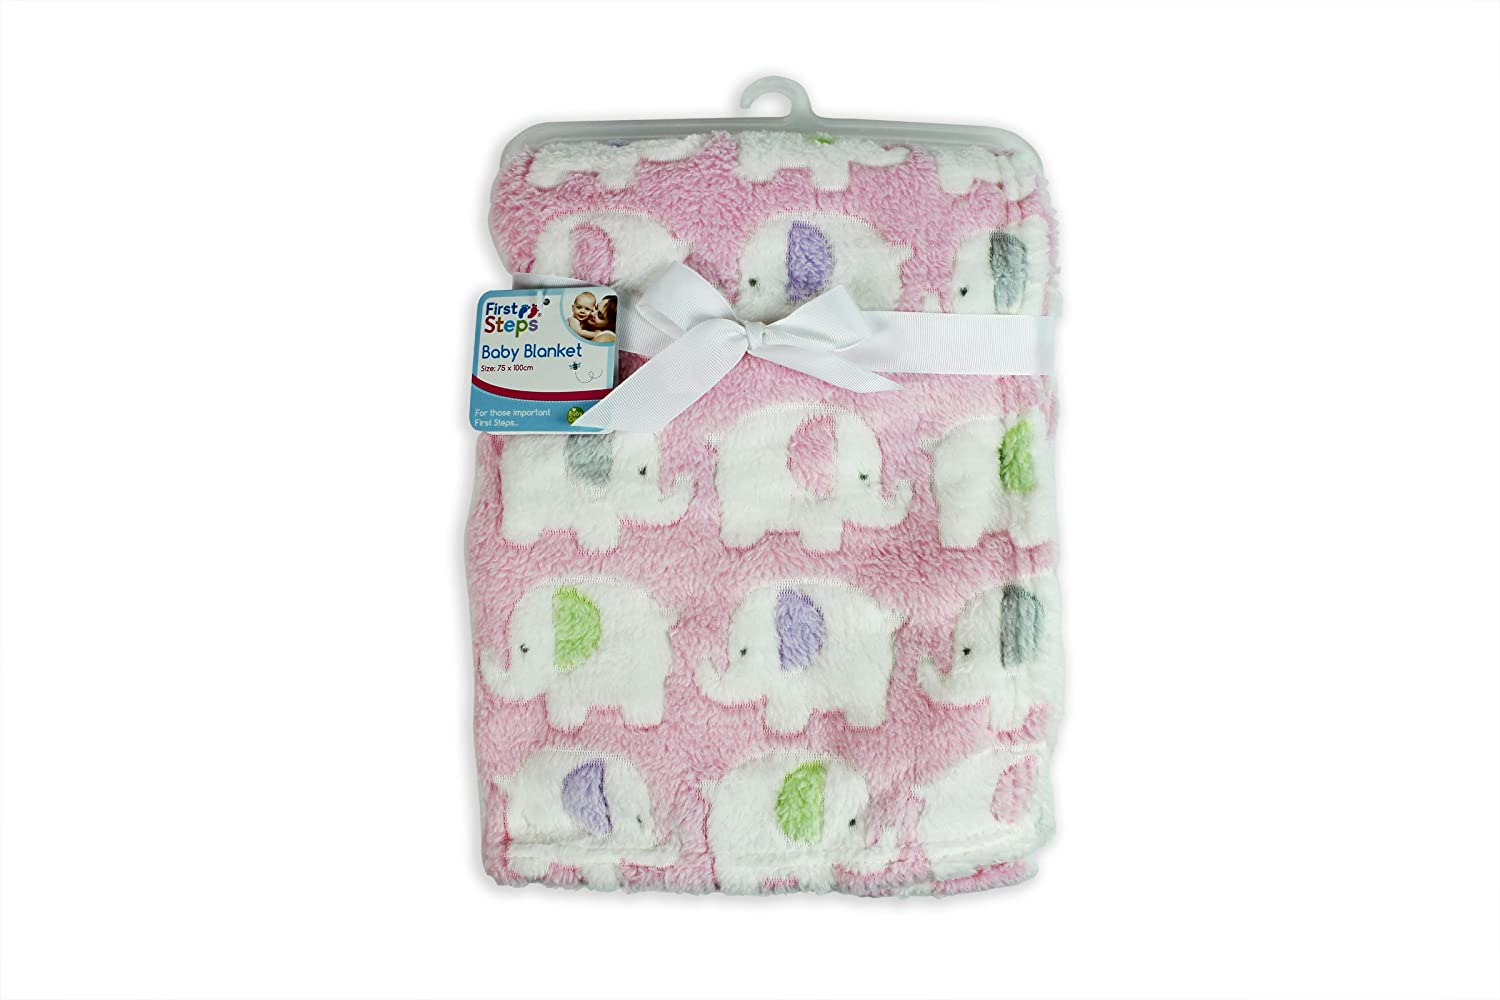 """First Steps"" Luxury Soft Fleece Baby Blanket in Cute Pink Elephant Design 75 x 100cm for Babies from Newborn RSW"